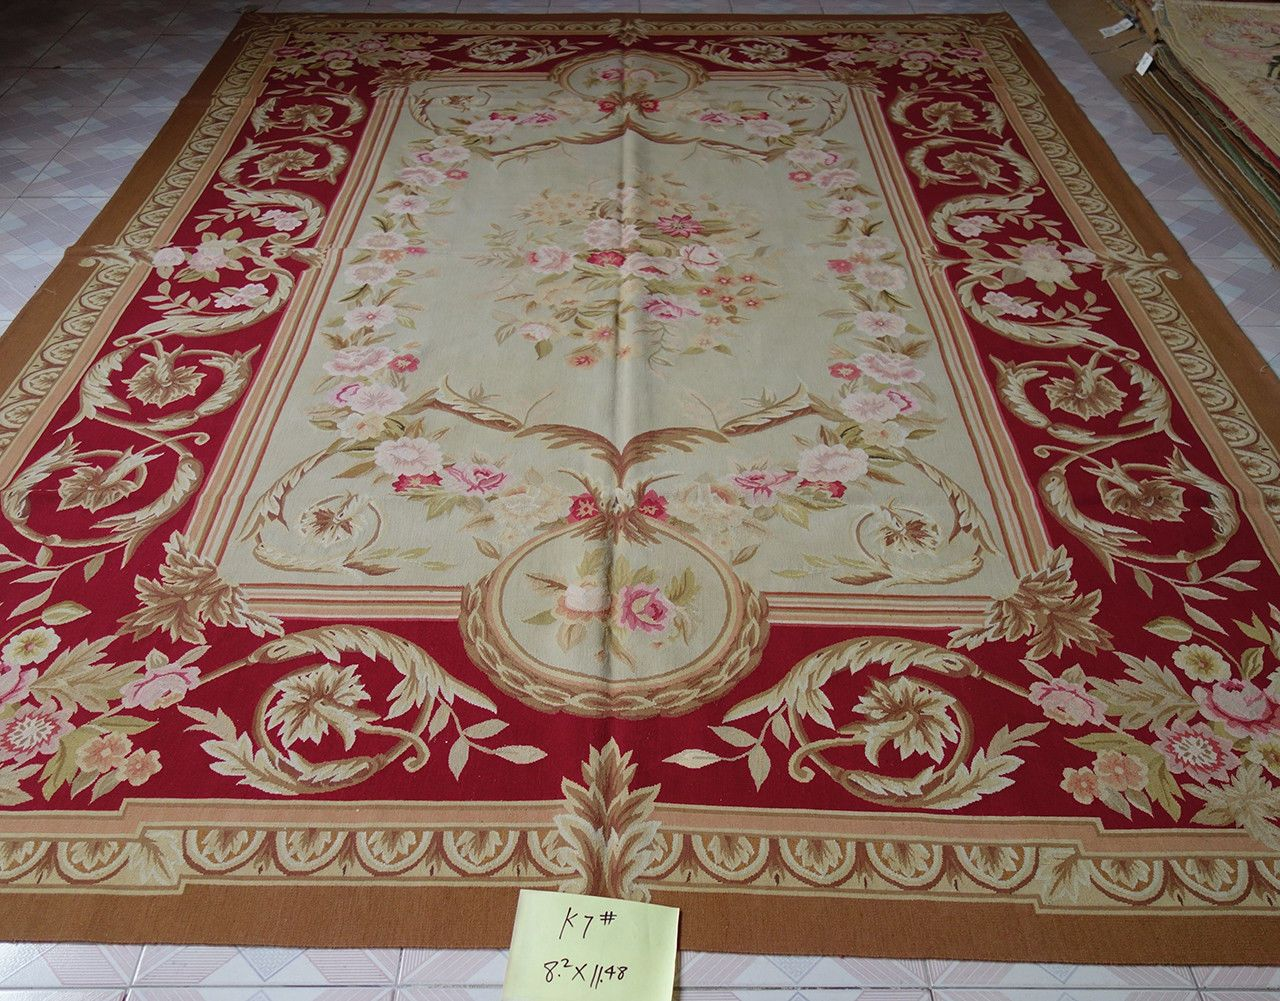 2 5 X 3 Meter Large Burgandy Beige Living Fine Room Decor Aubusson Rug Ebay